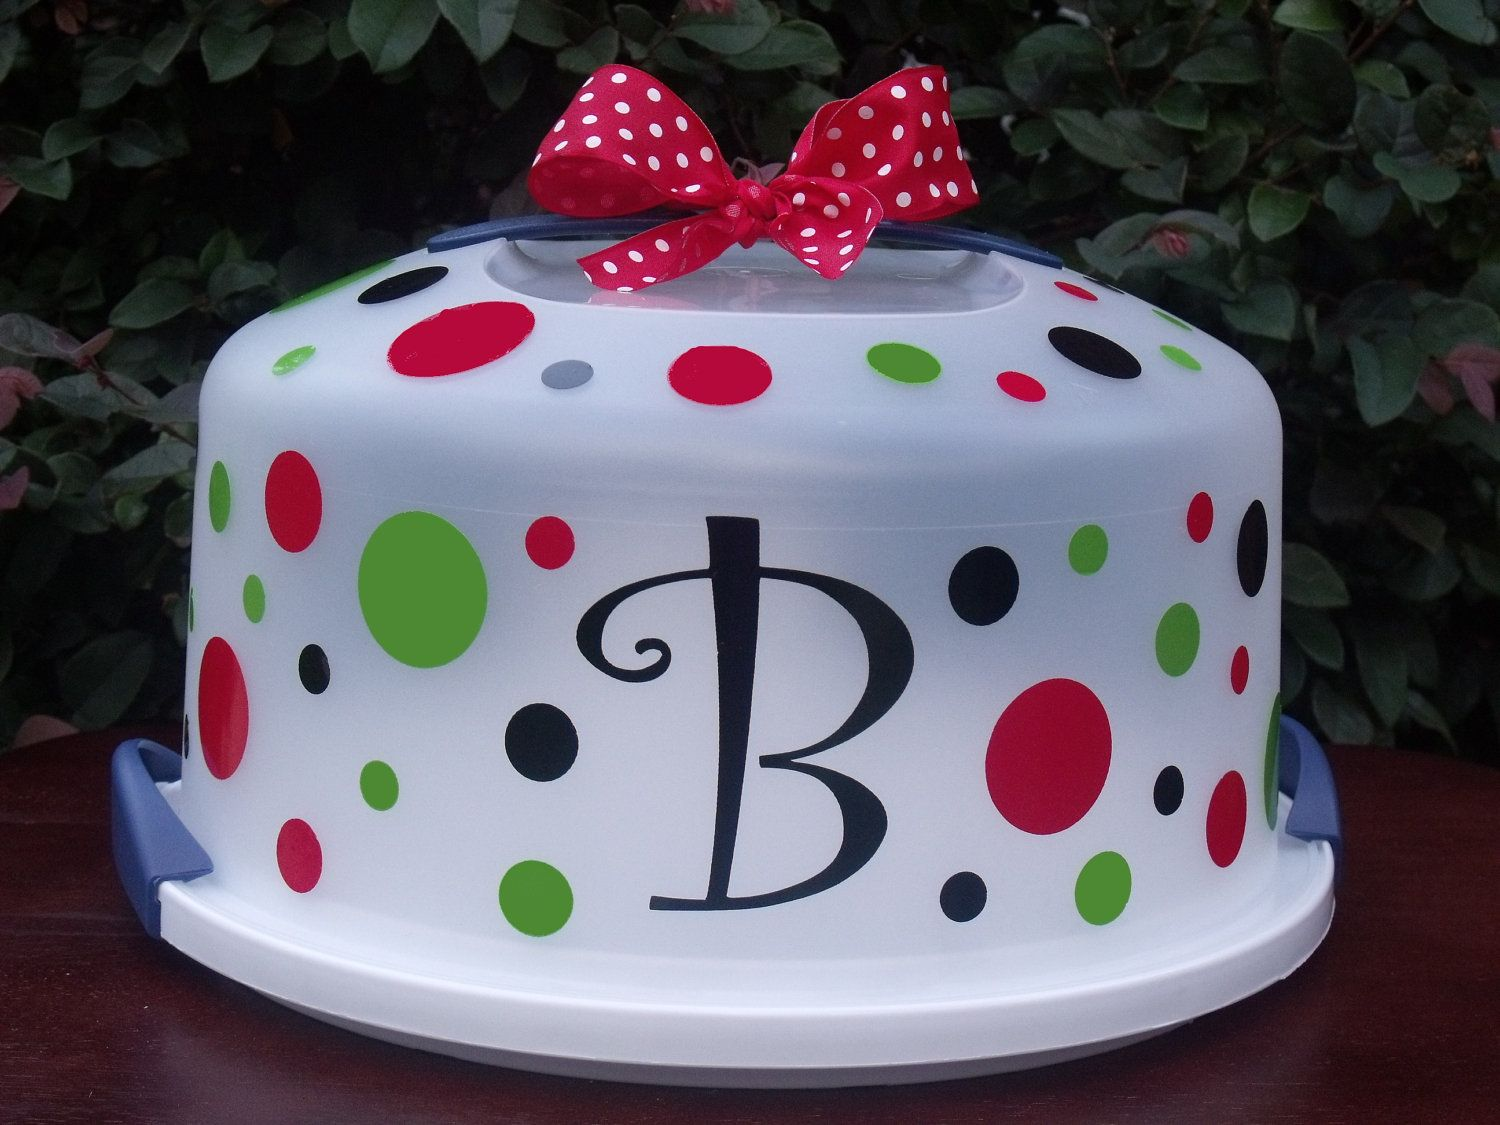 Cake Carrier Target Decorate A Plastic Cake Carrier  Crafts And Ideas  Pinterest